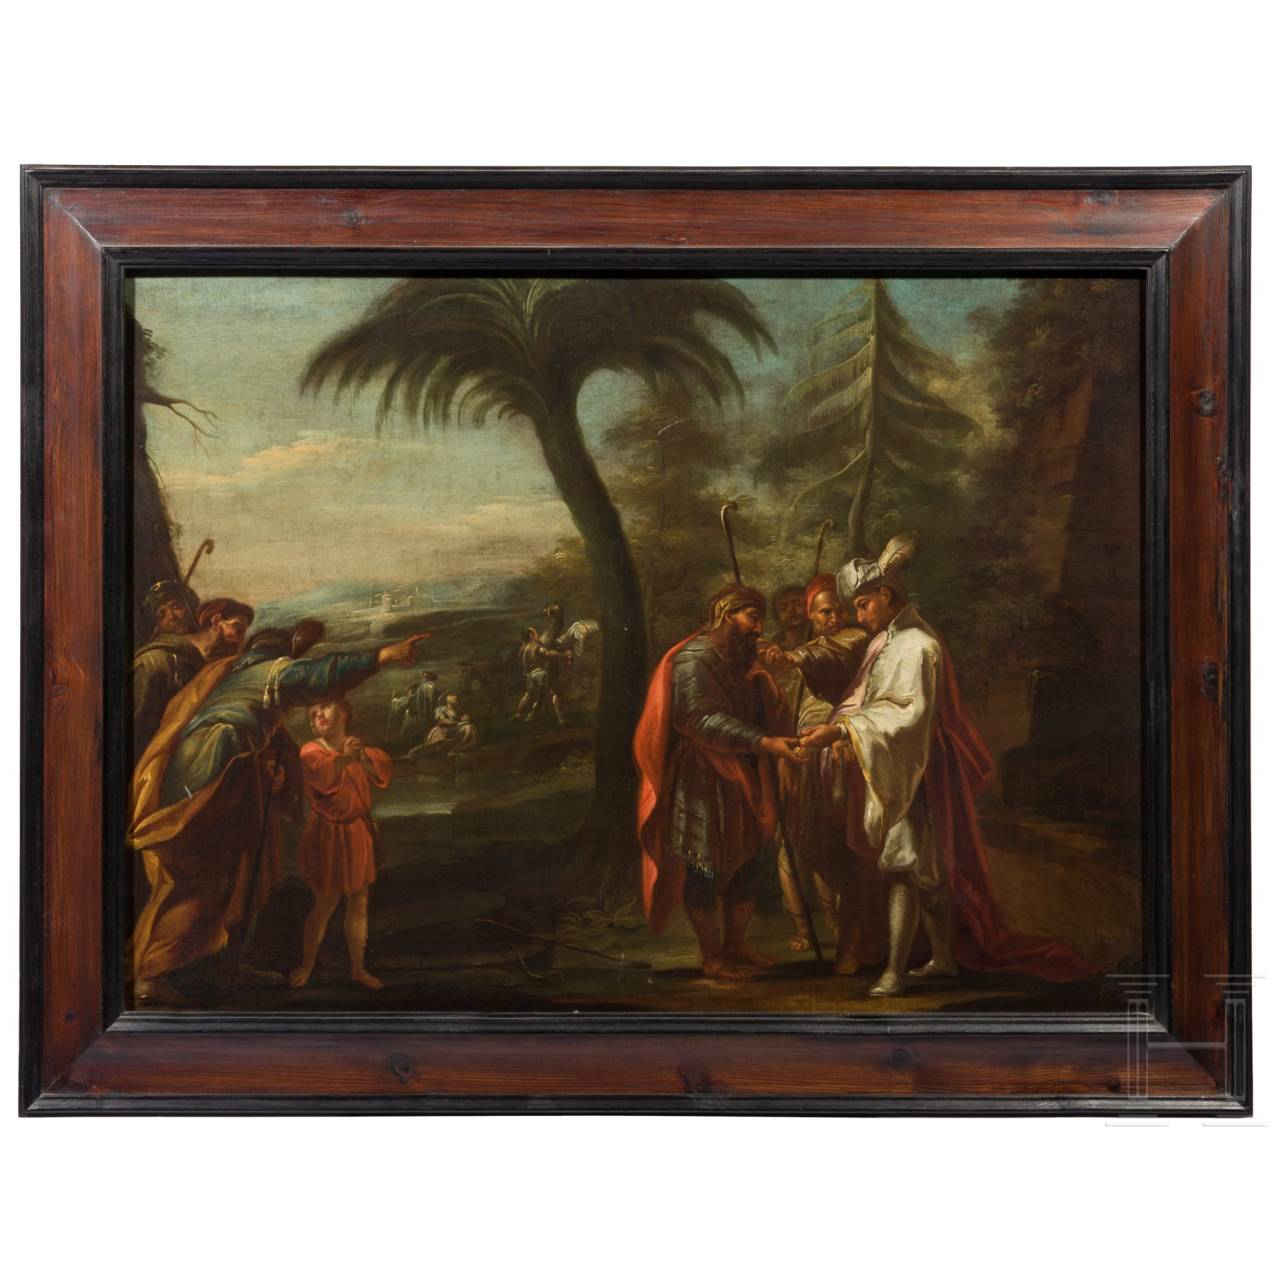 An Italo-Flemish Old Master of a southern landscape with figures, 17th century